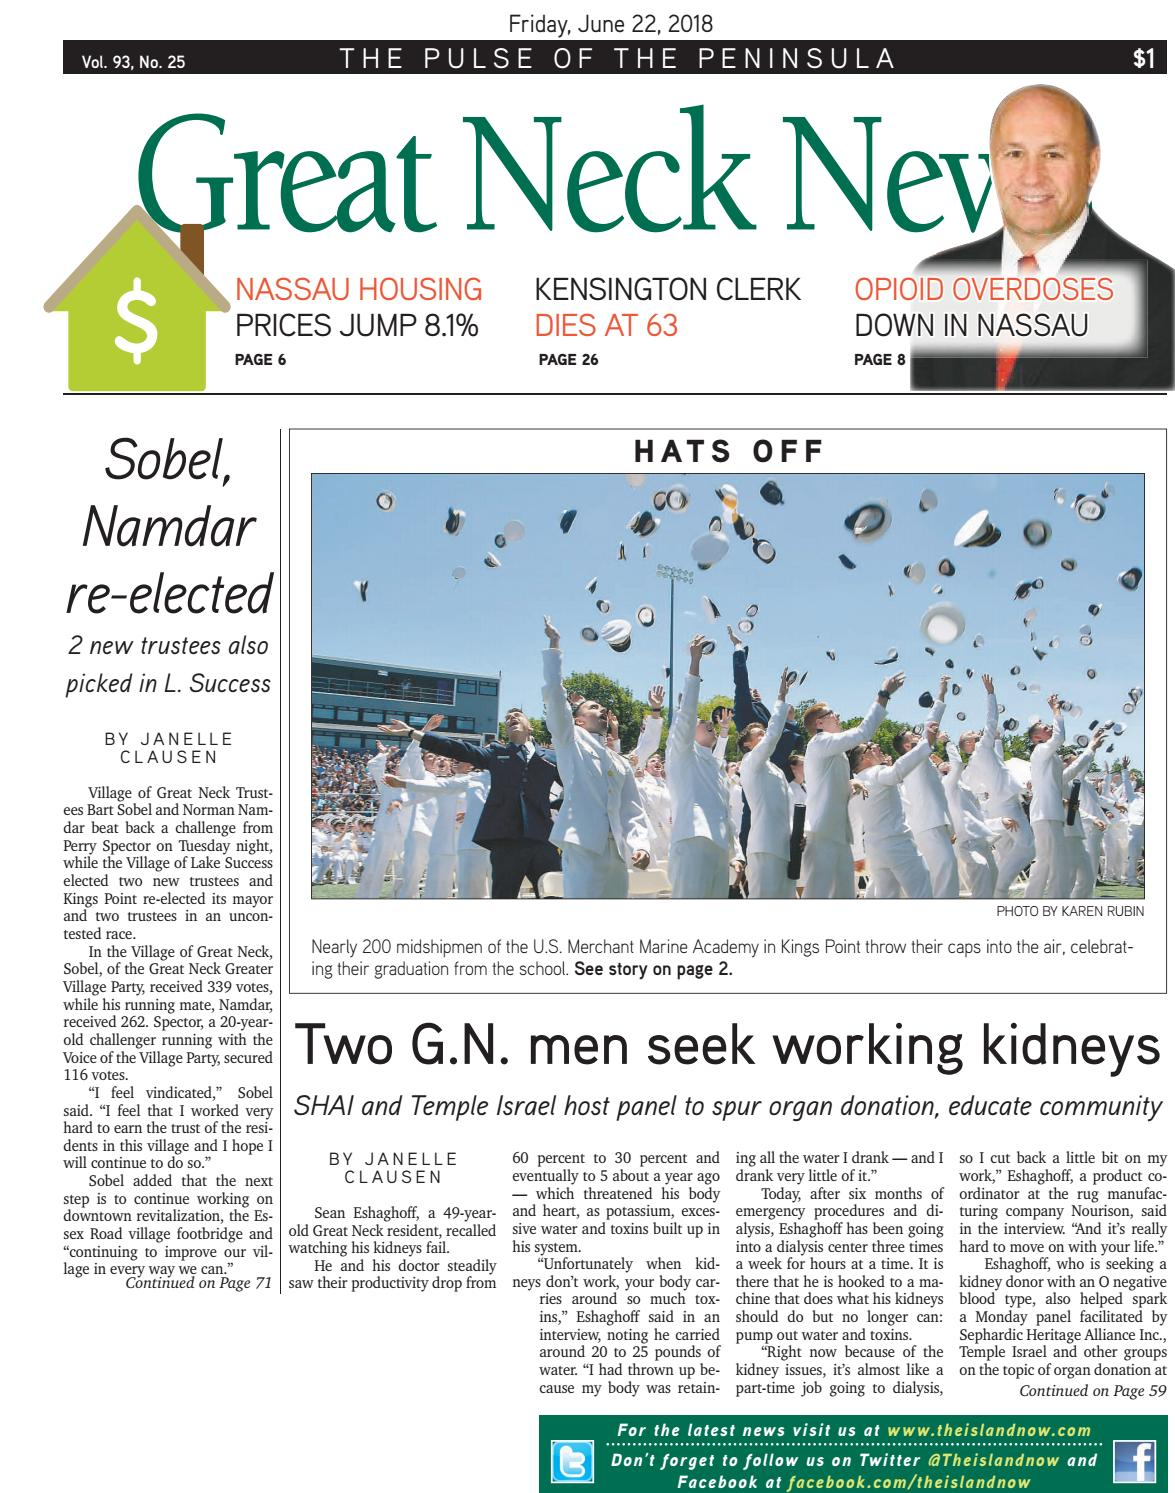 bc25e9b2e89f3 Great Neck News 2018 06 22 by The Island Now - issuu